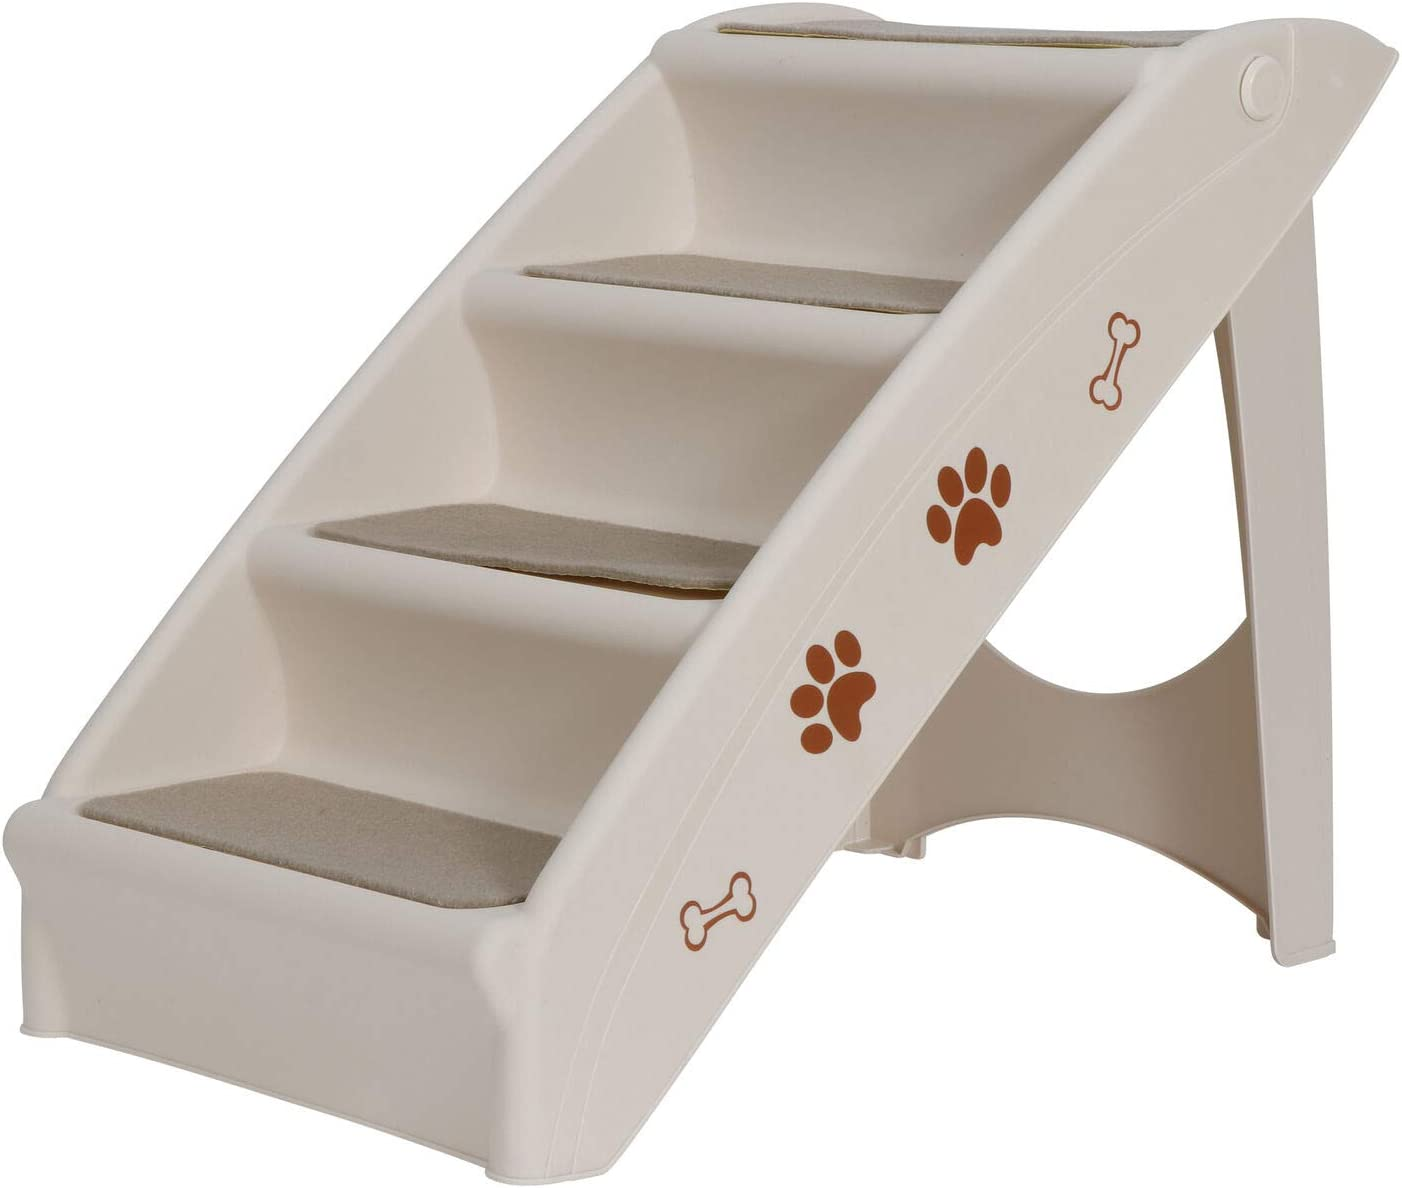 Foldable Quantity limited Pet Stairs Max 59% OFF 4 Non-Slip Steps Frame Dog Support w Ladder